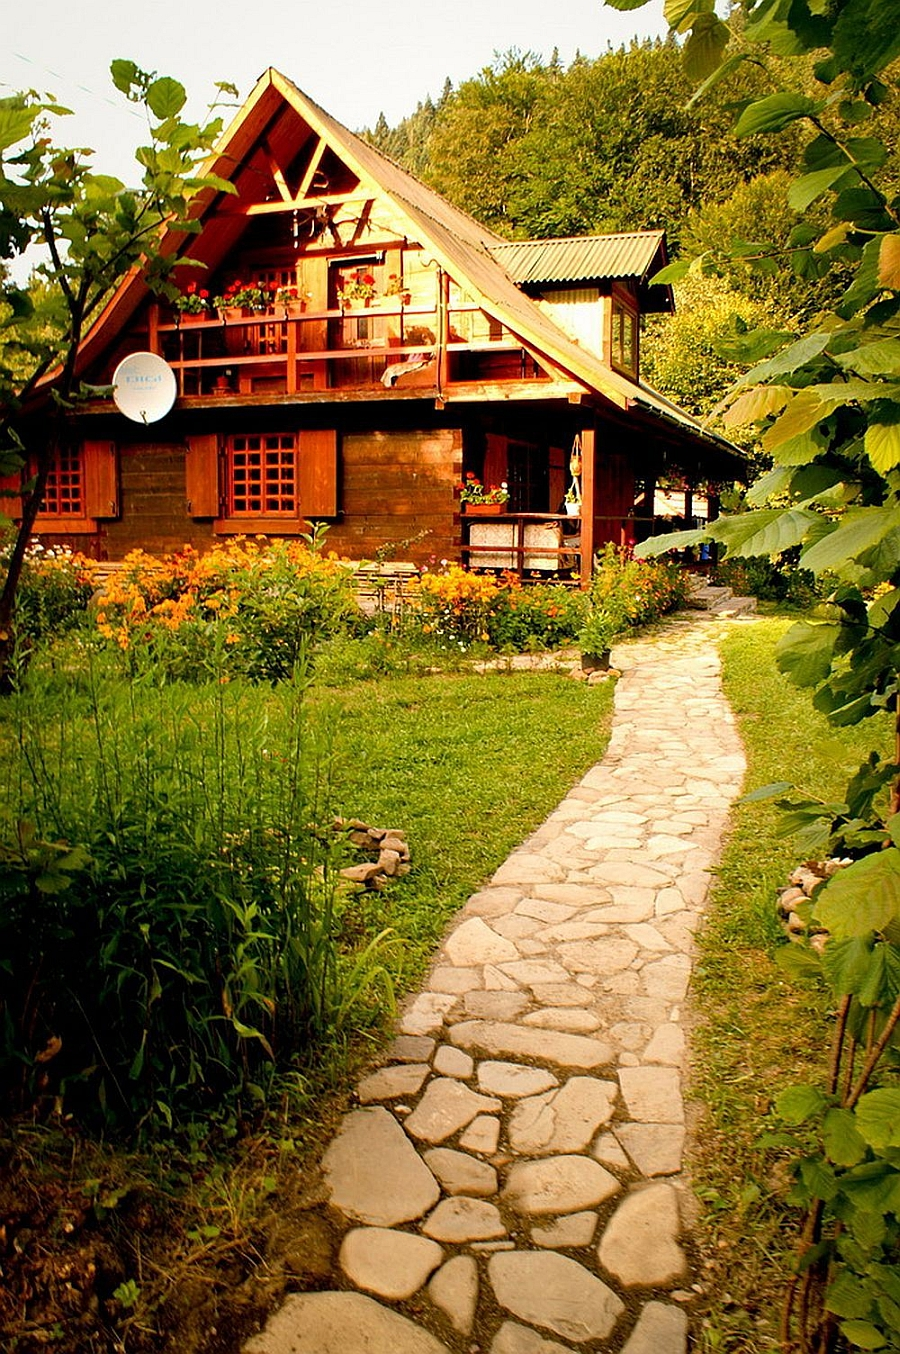 Stone pathway that leads to the lovely rustic Romanian House